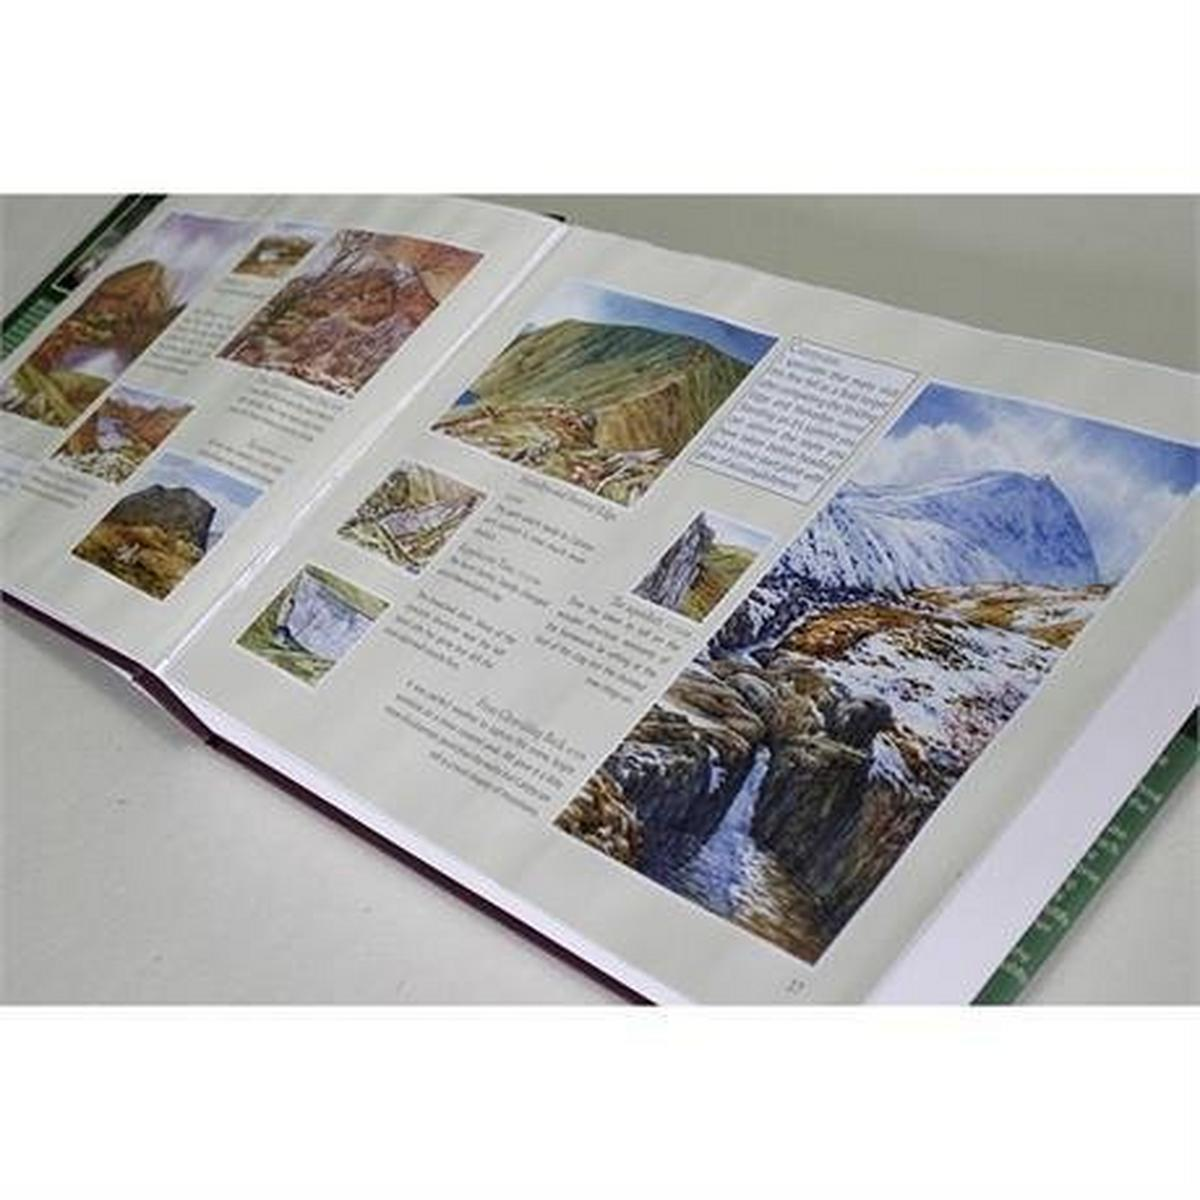 Miscellaneous Book: The Wainwrights in Colour: Andy Beck